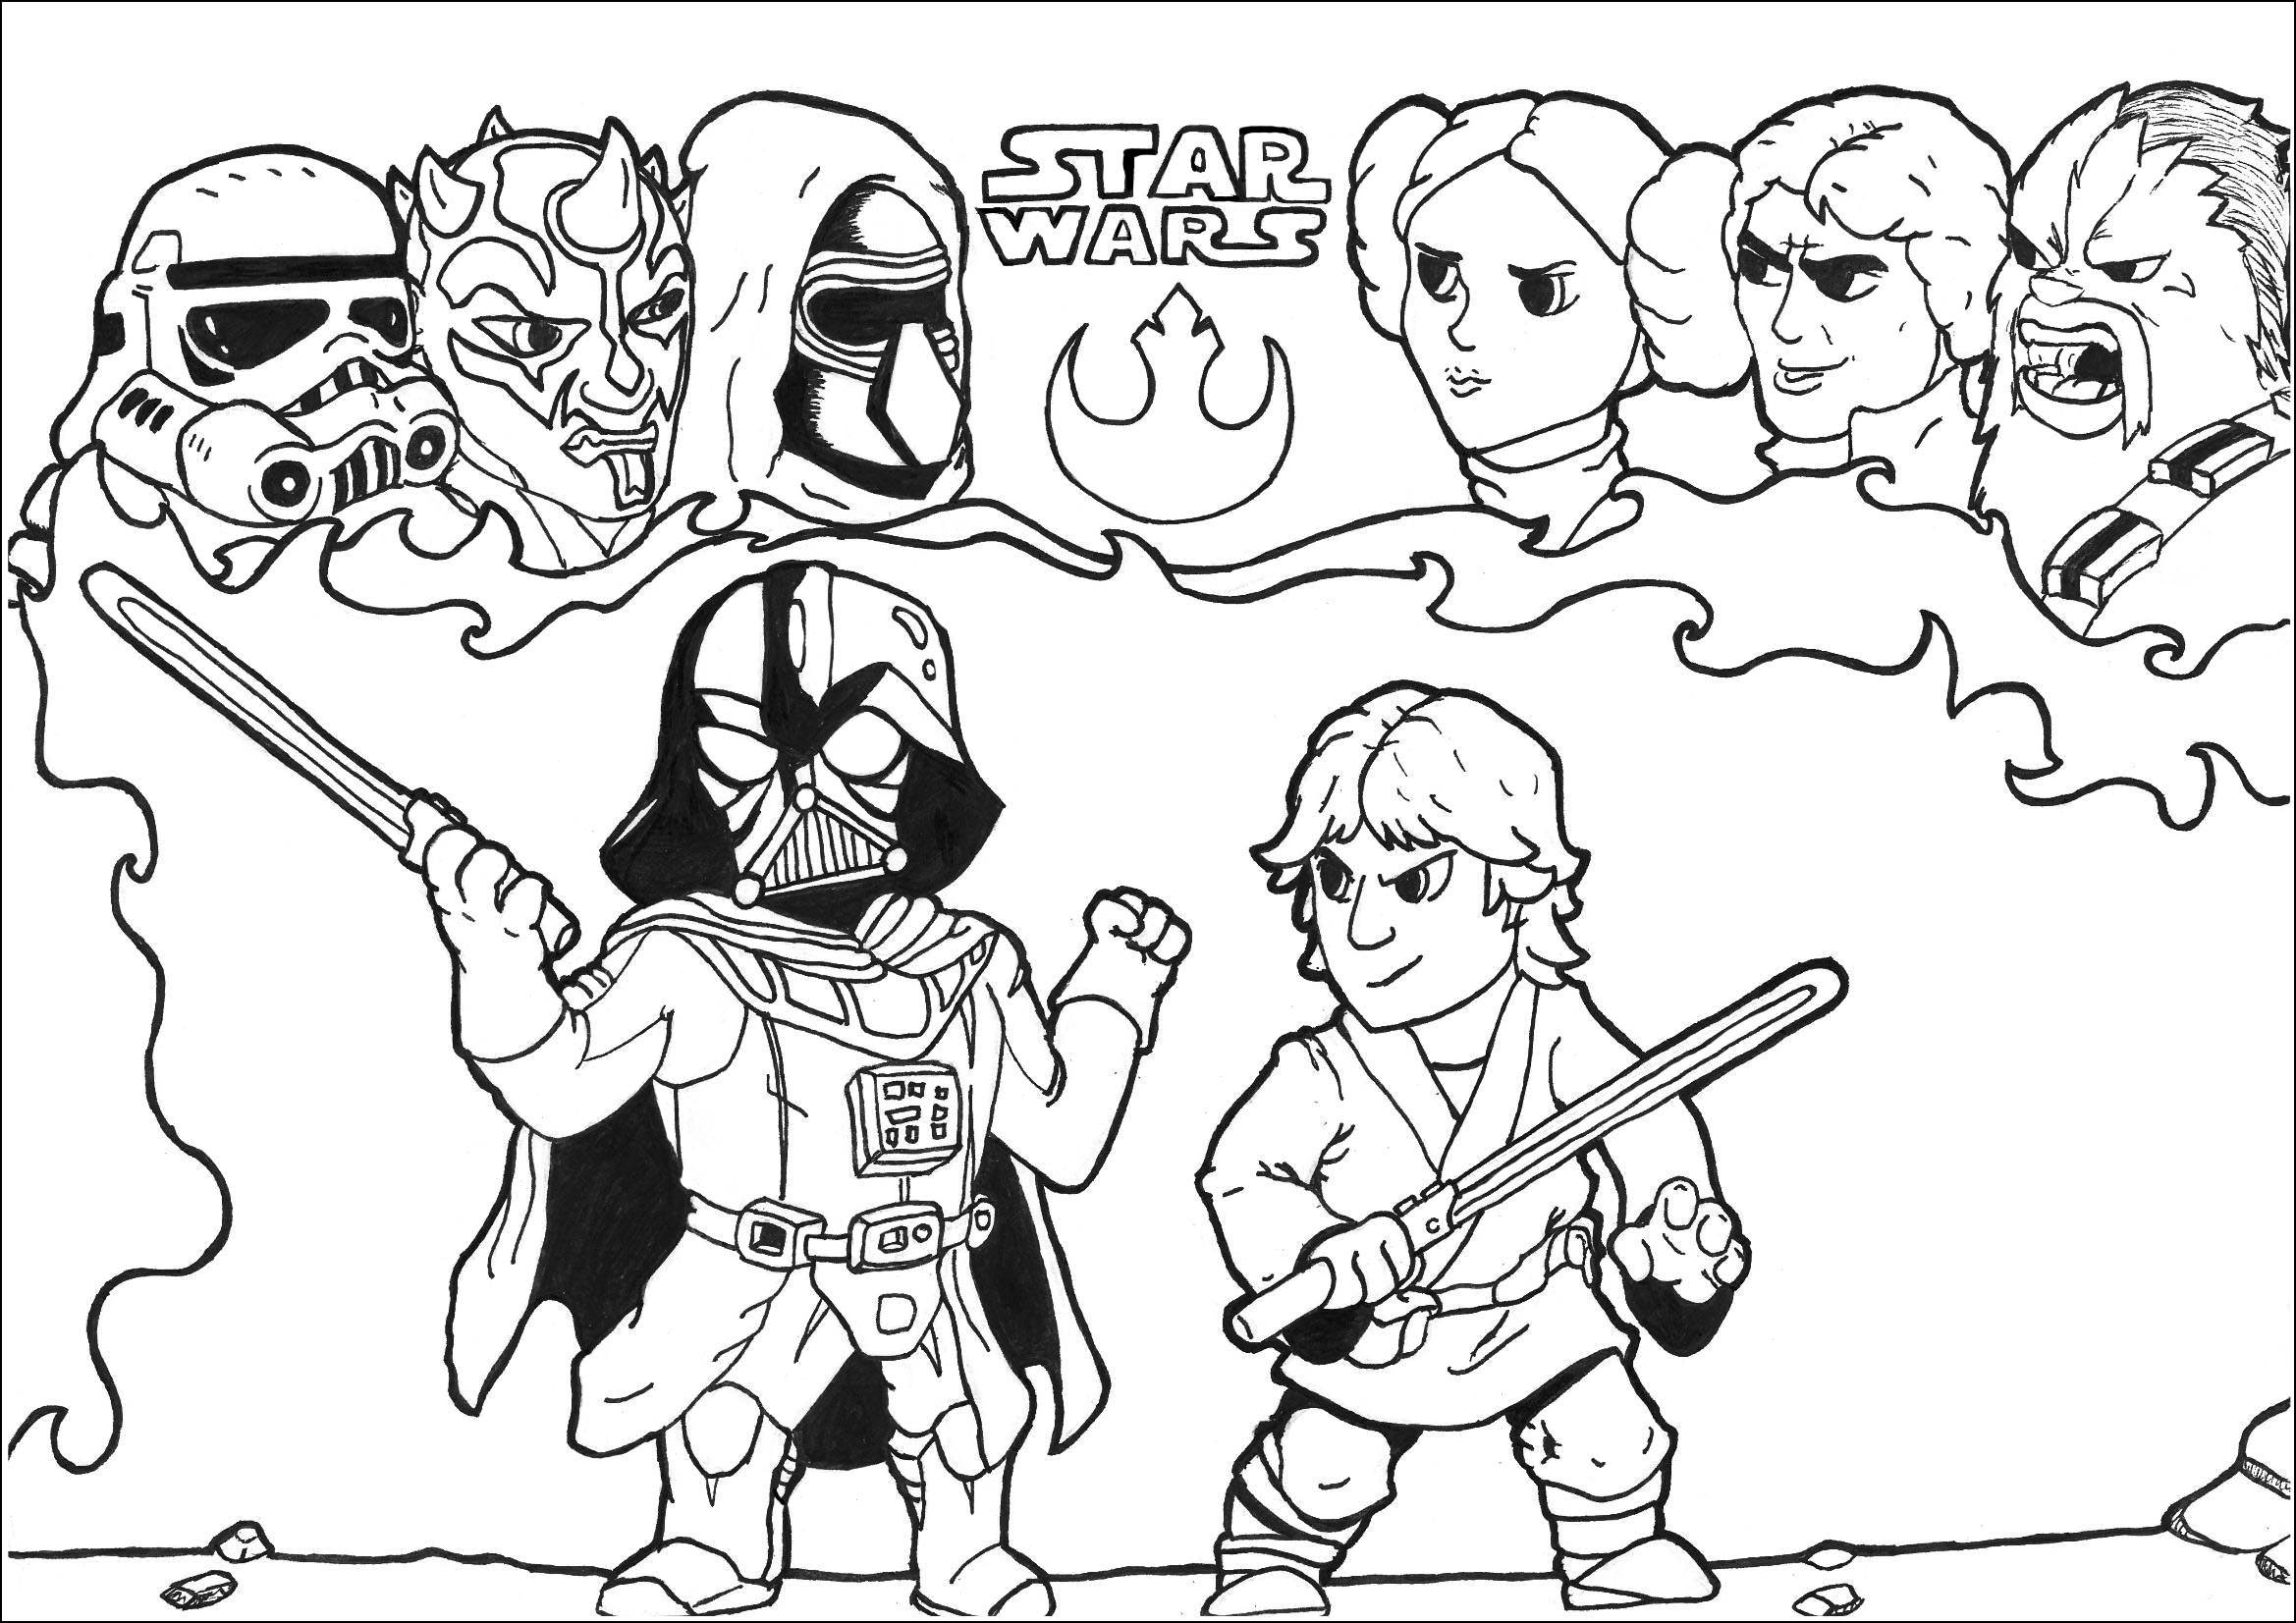 star wars free coloring pages star wars stormtrooper coloring pages printable coloring star pages wars free coloring